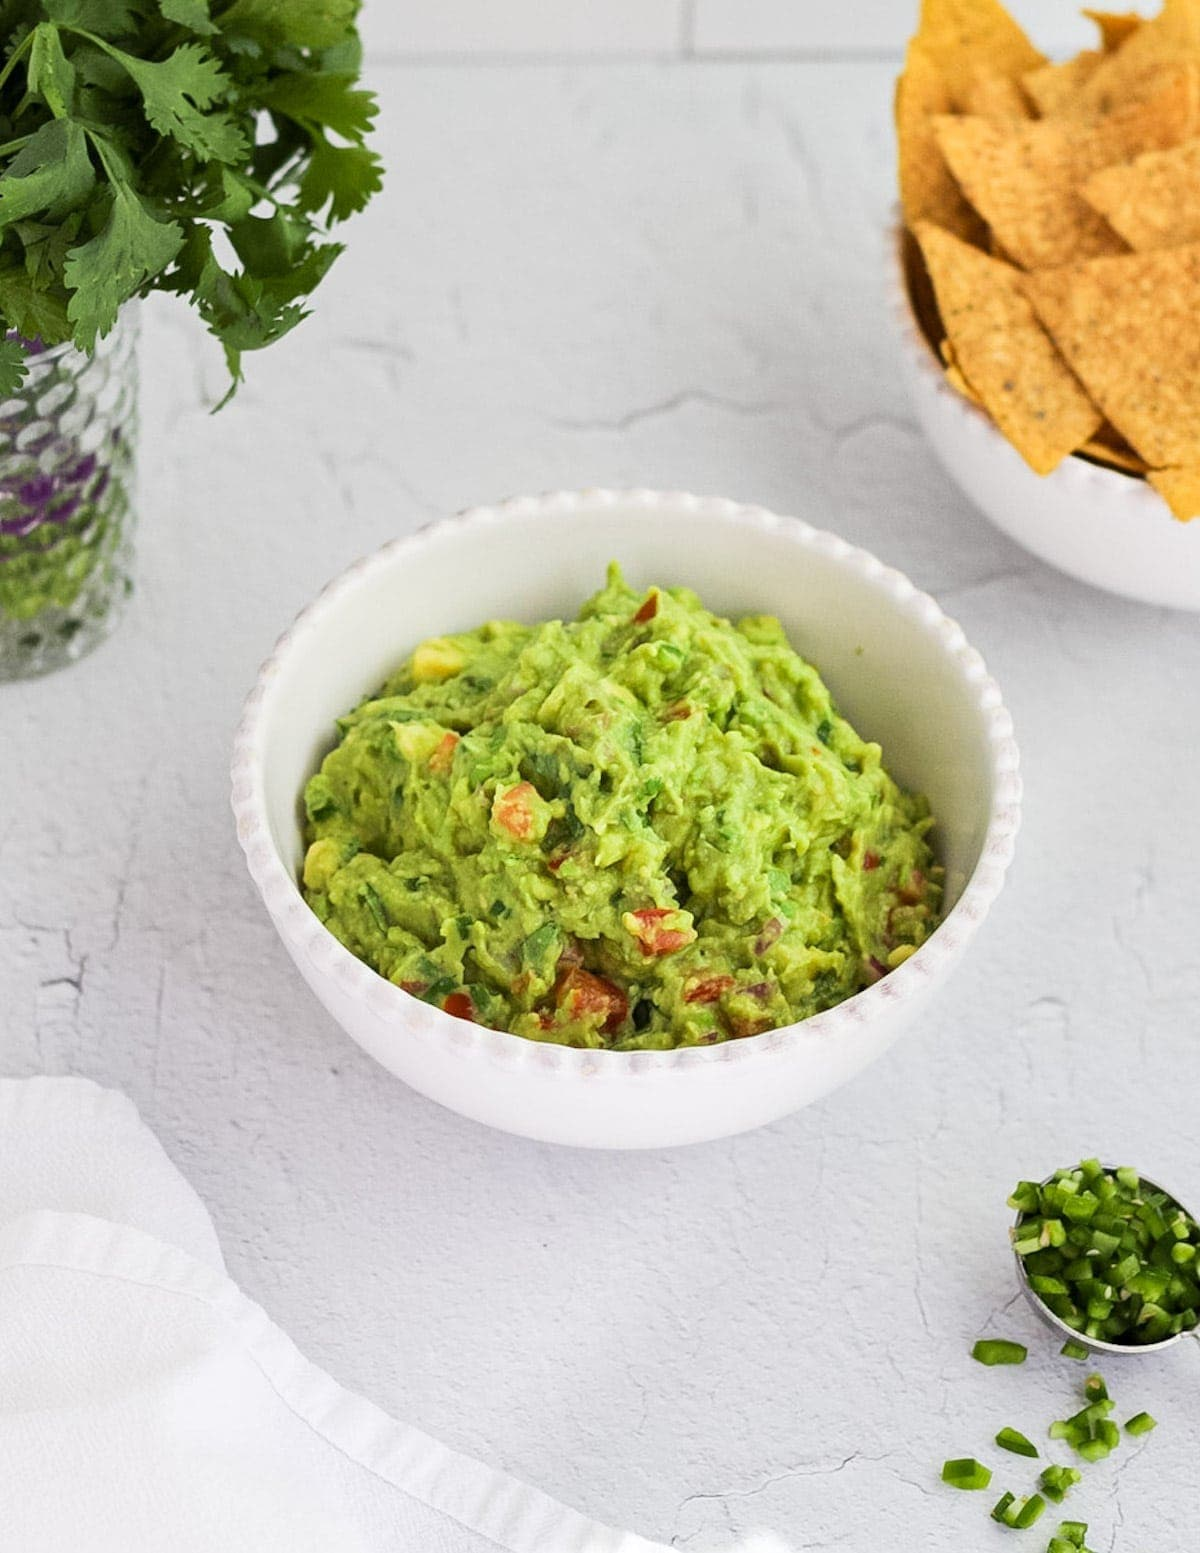 A picture of guacamole in a white bowl surrounded by ingredients.